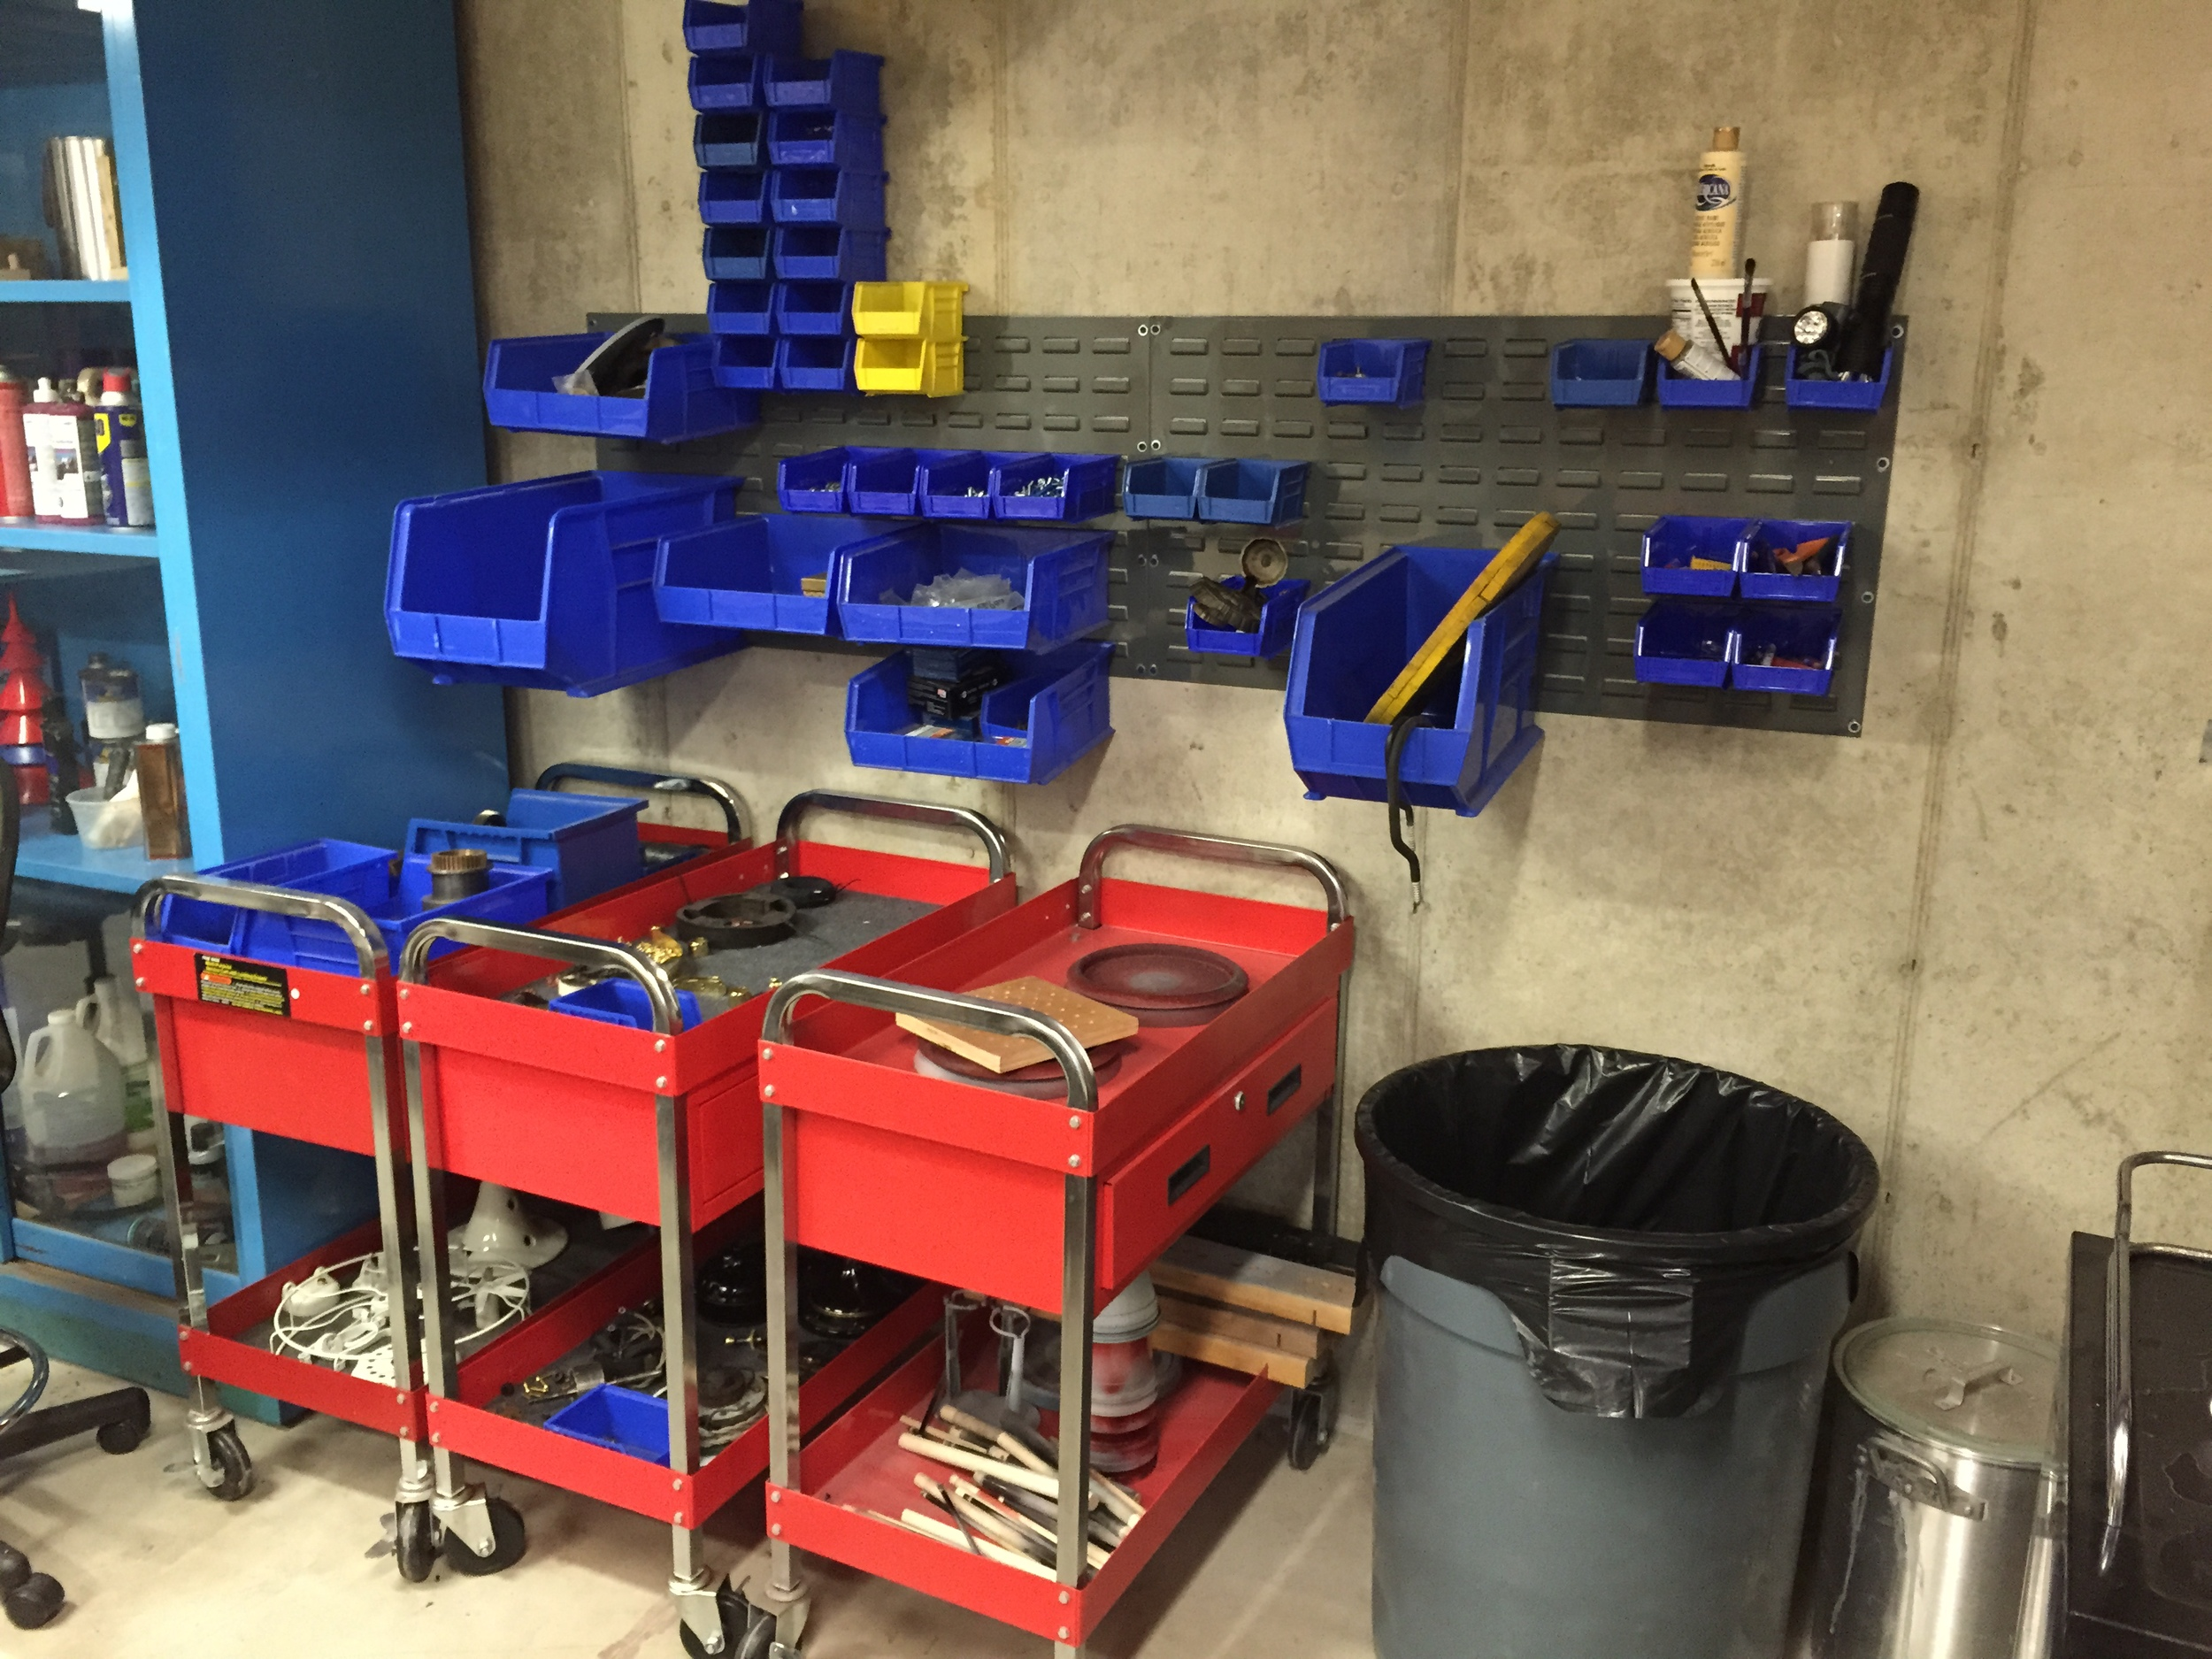 WIP carts with storage bins on a wall mounted rack.